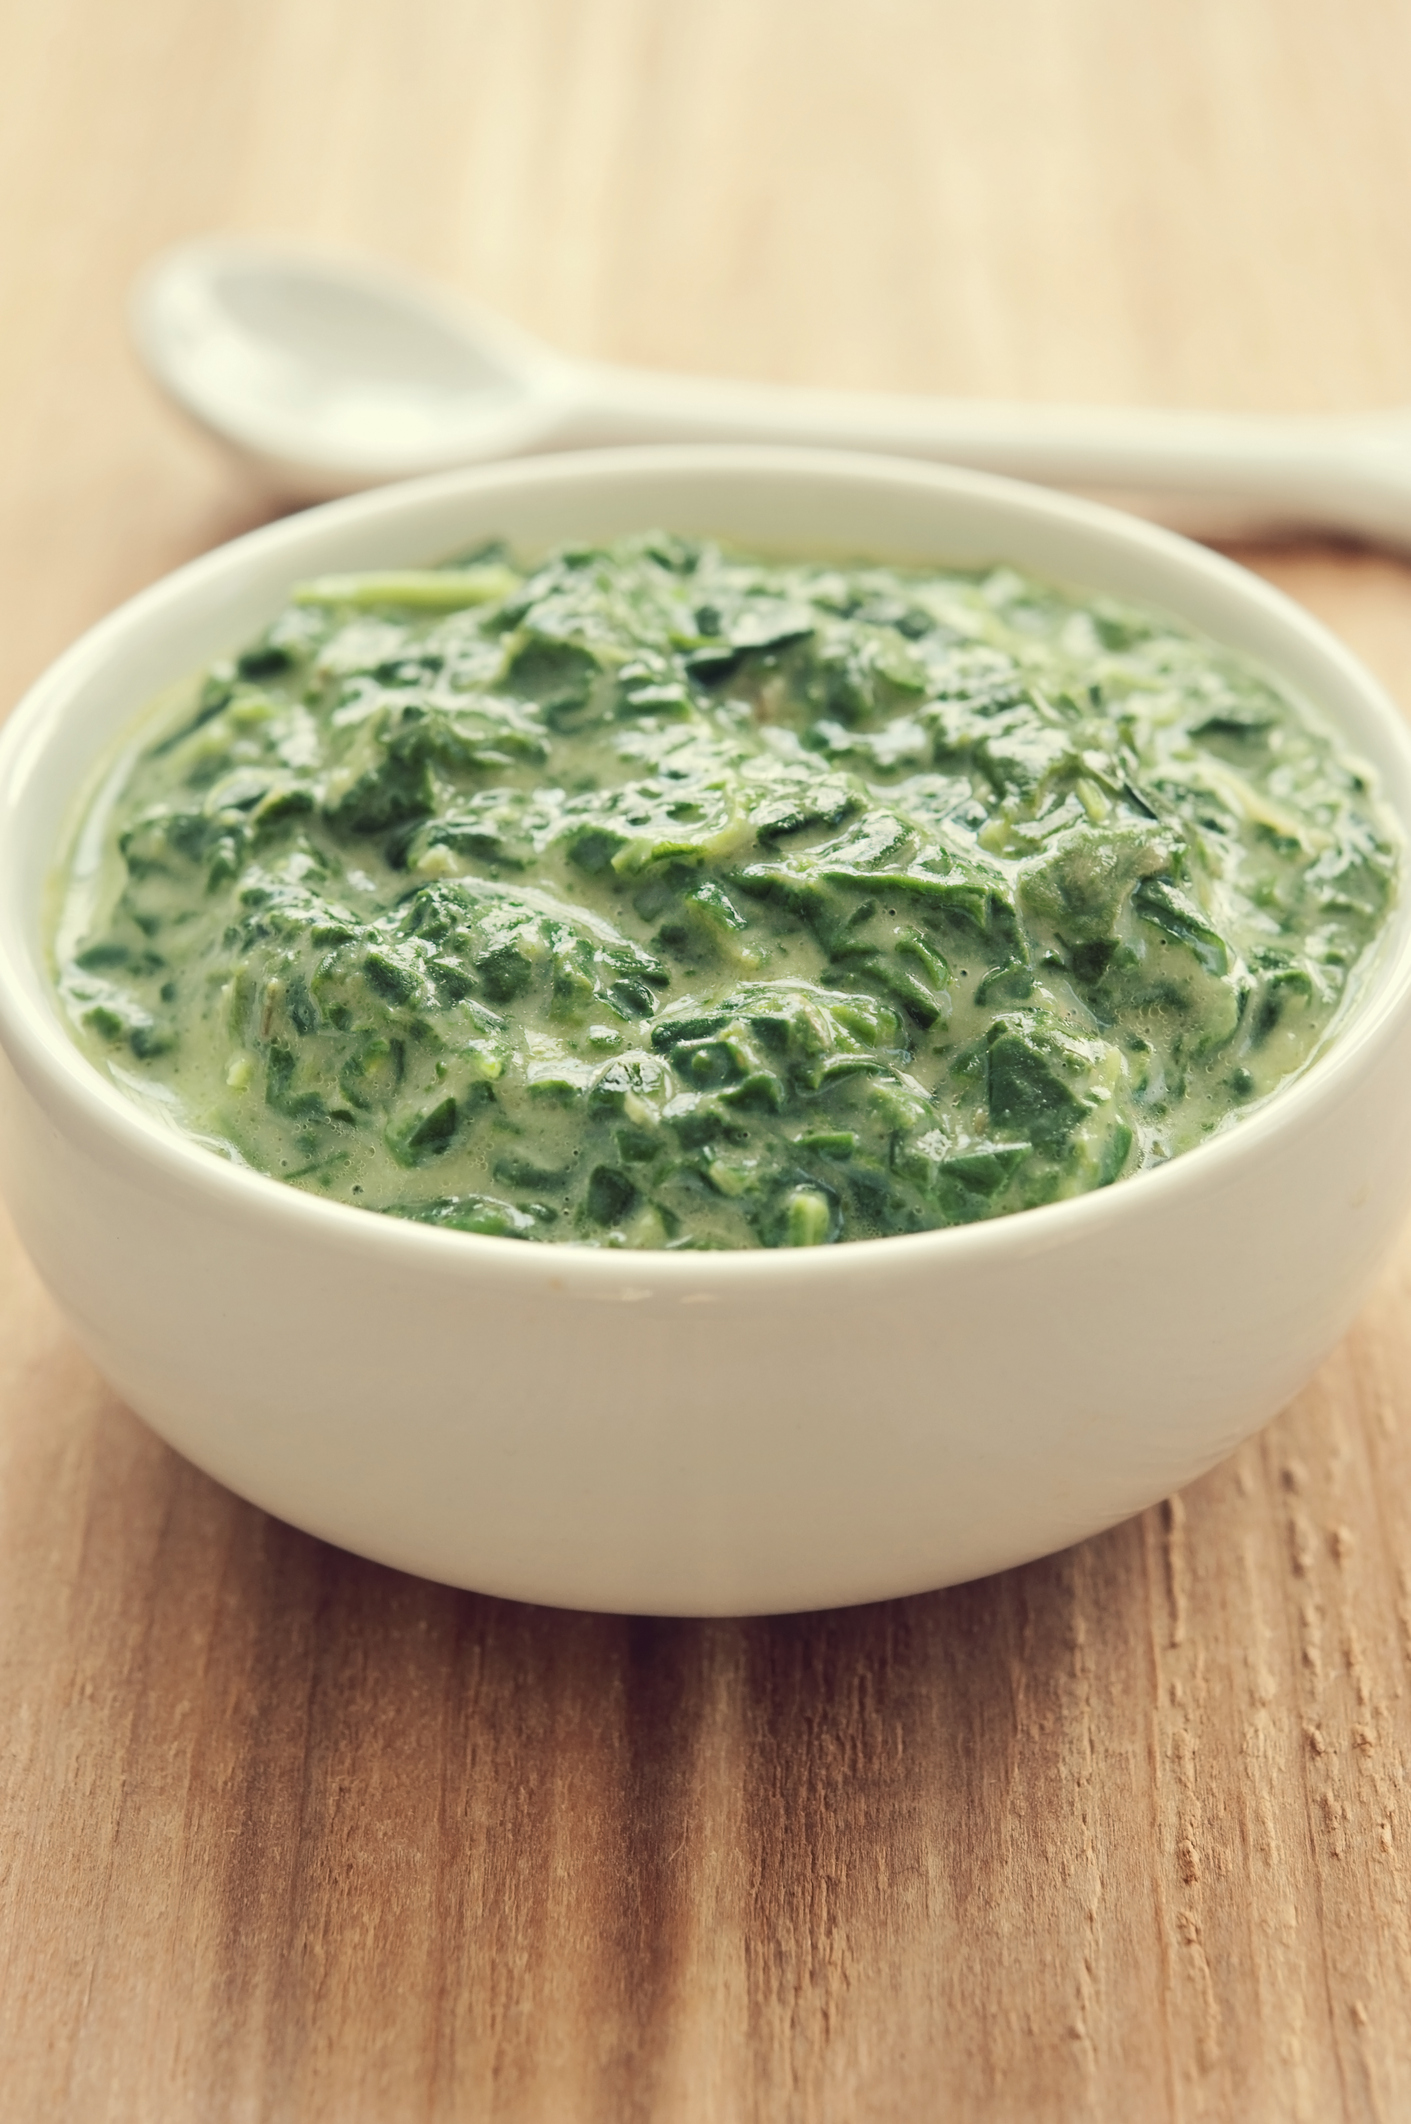 2. Creamed Spinach